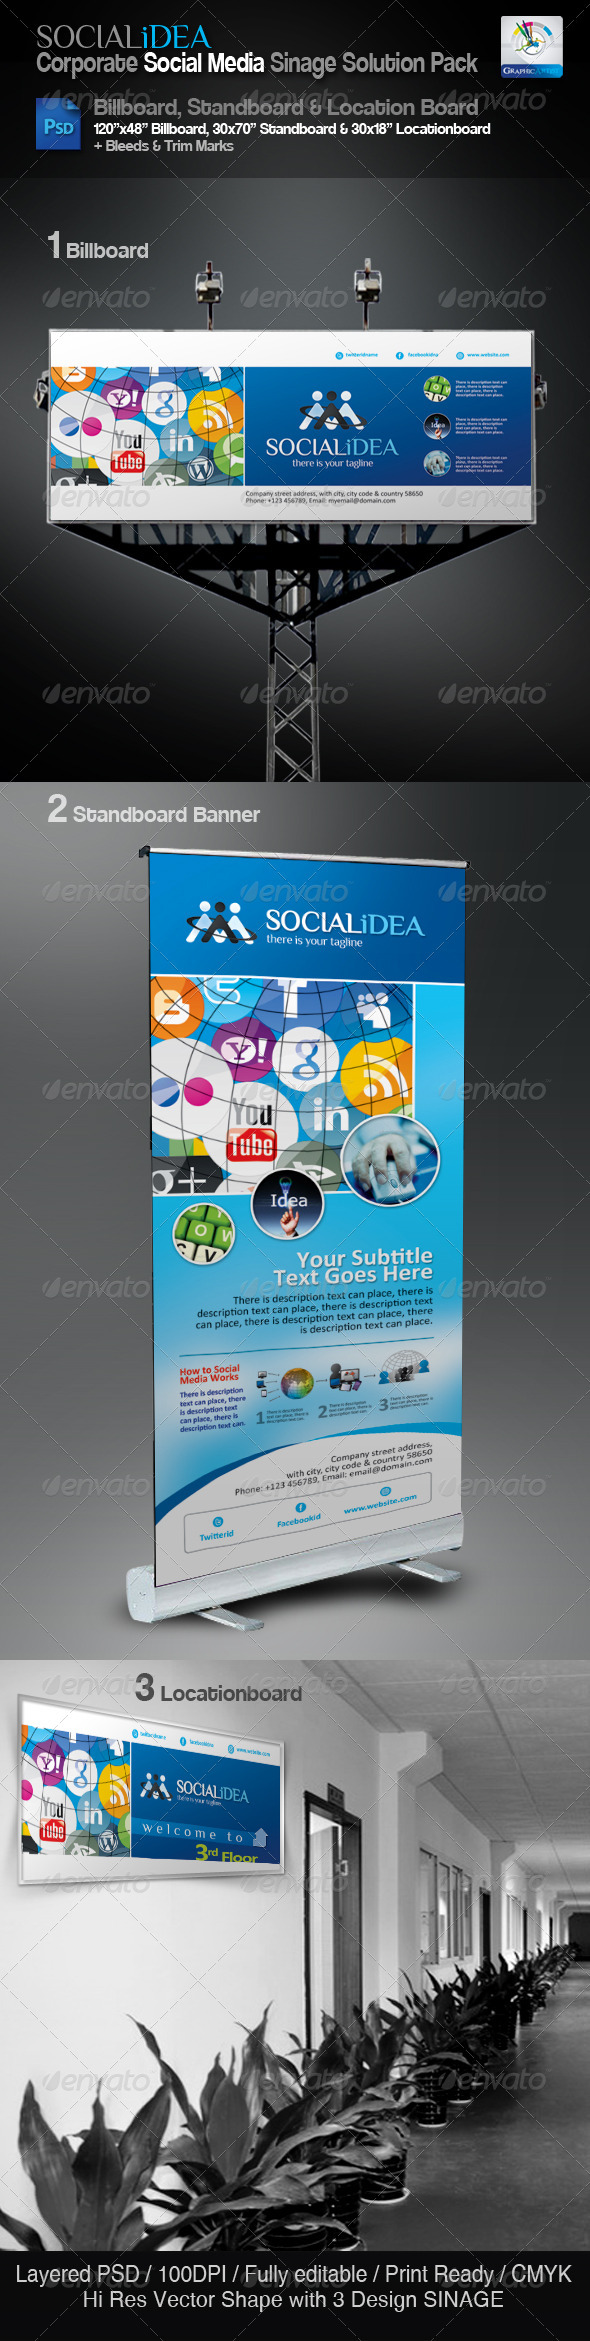 GraphicRiver Socialidea Corporate Sinage Solution Pack 3550291